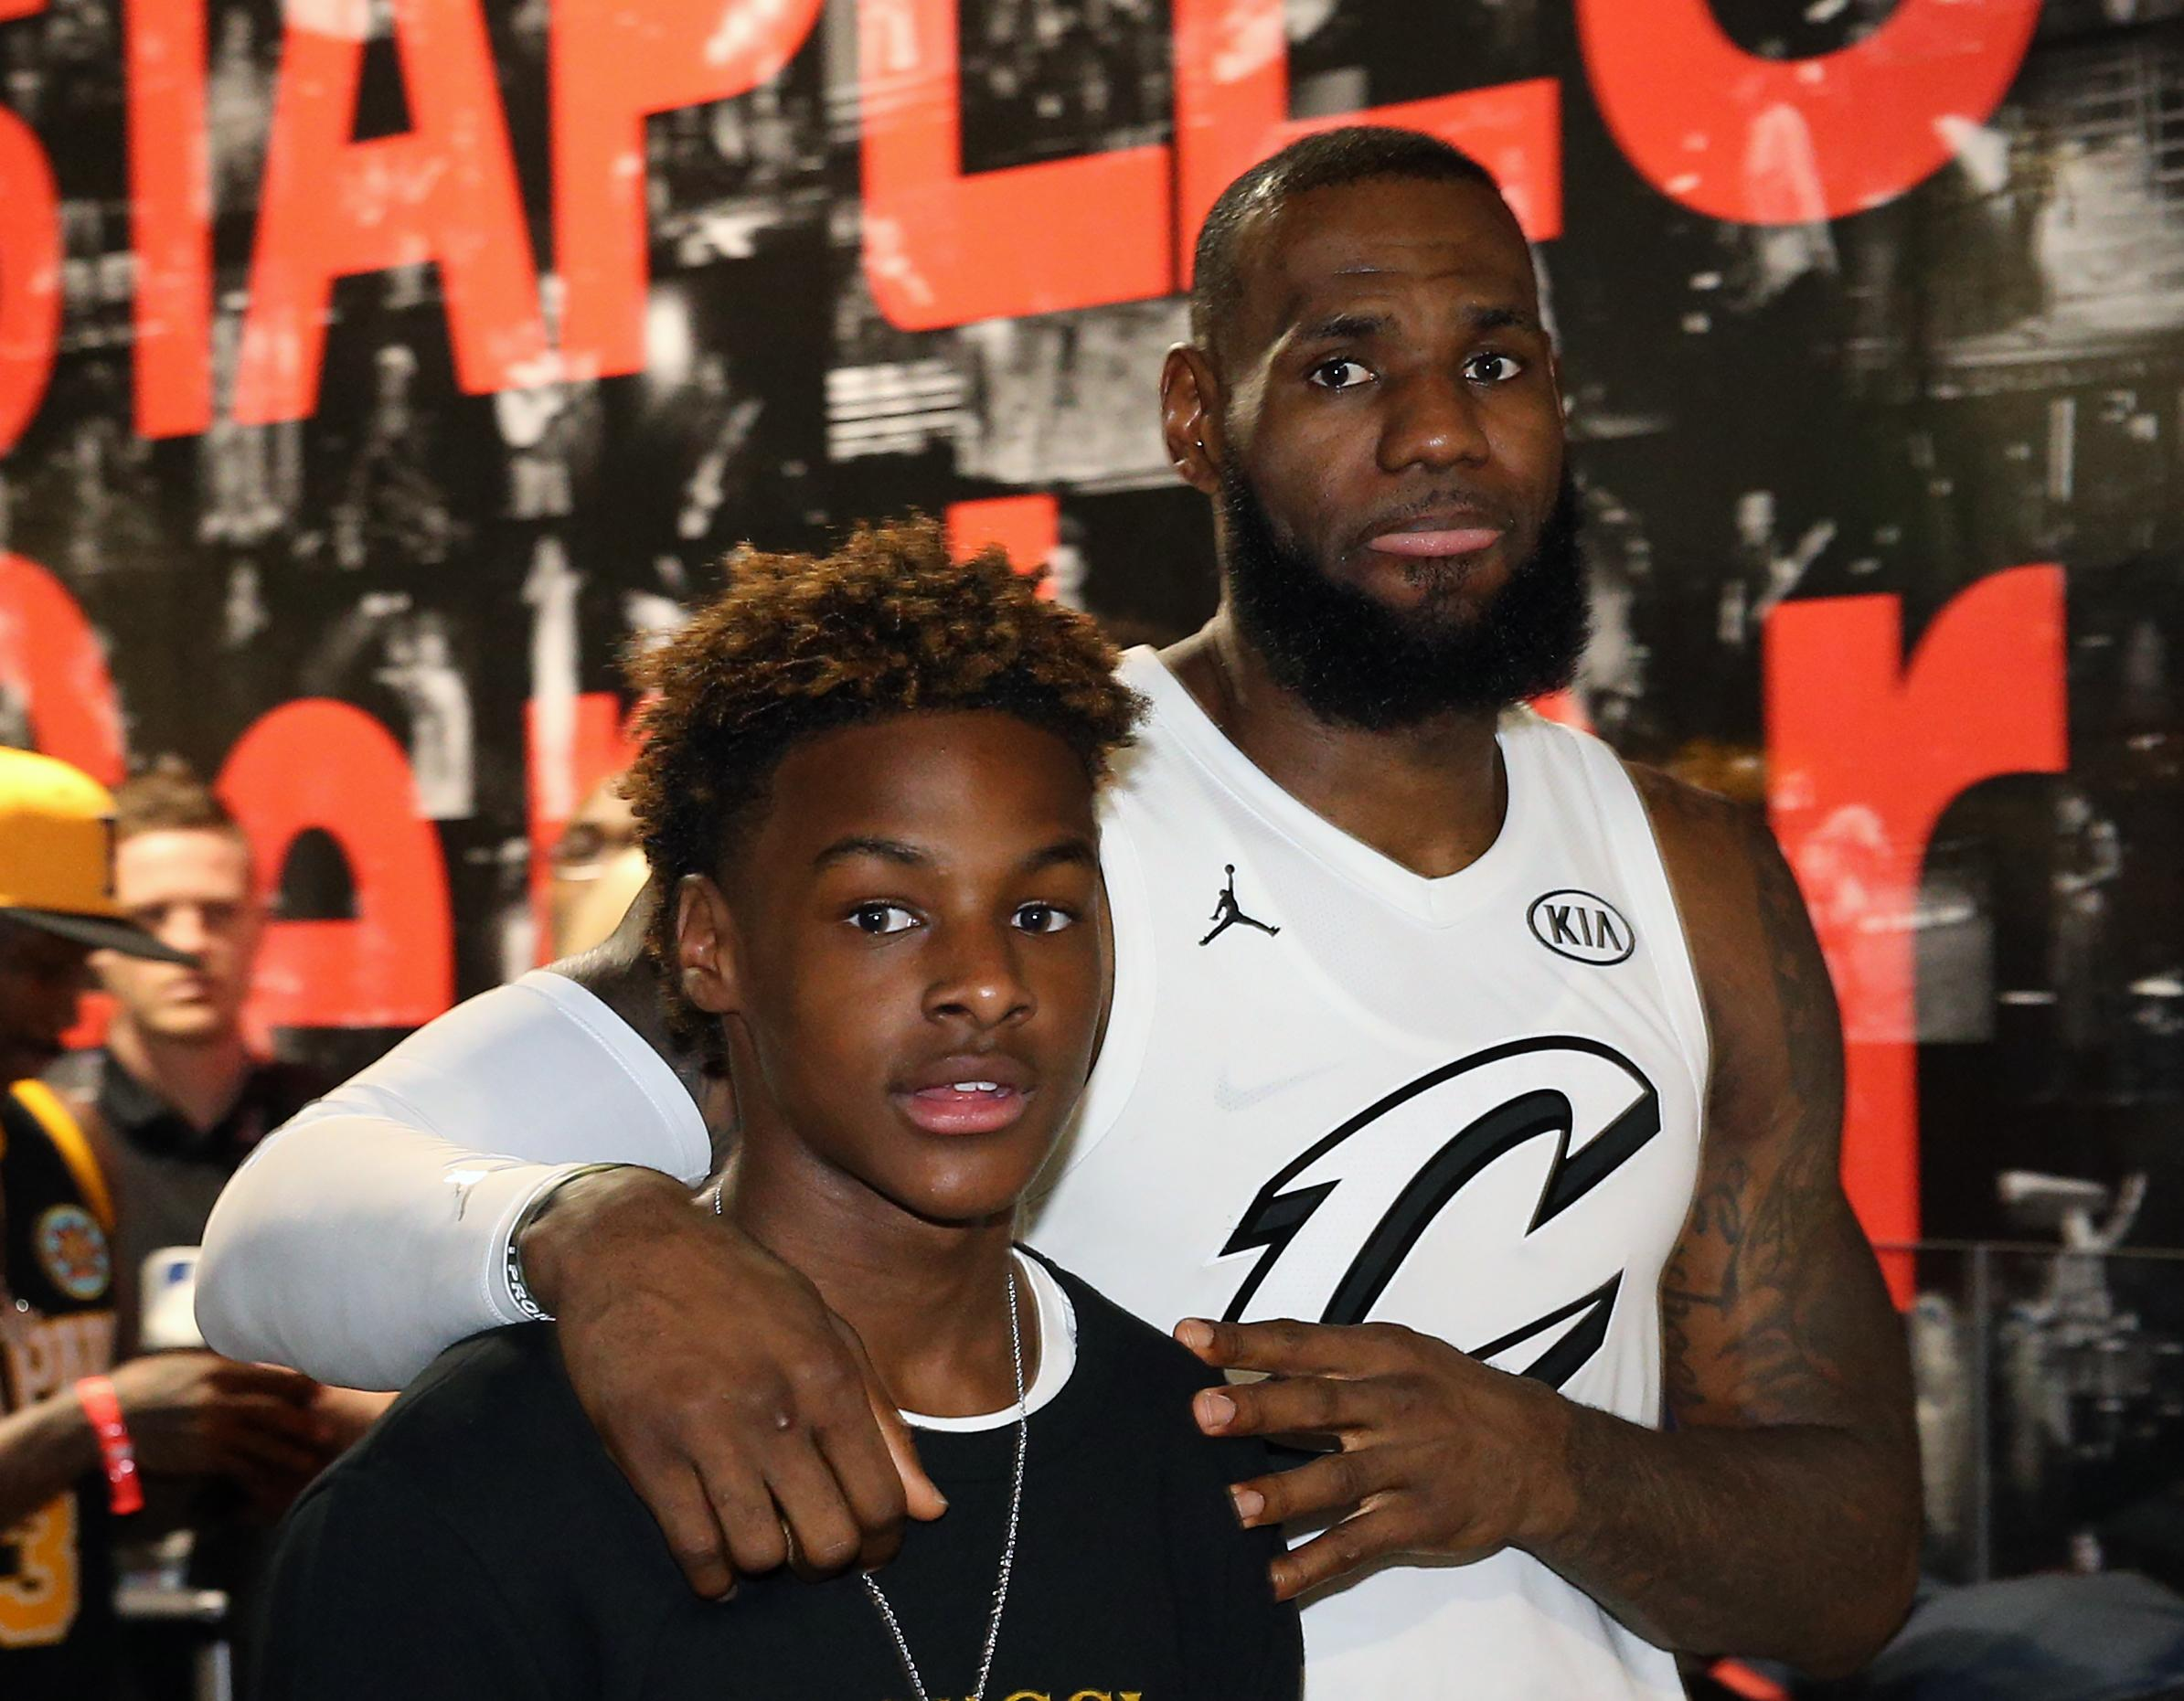 Would LeBron James prolong career to play with son? 'Got to'